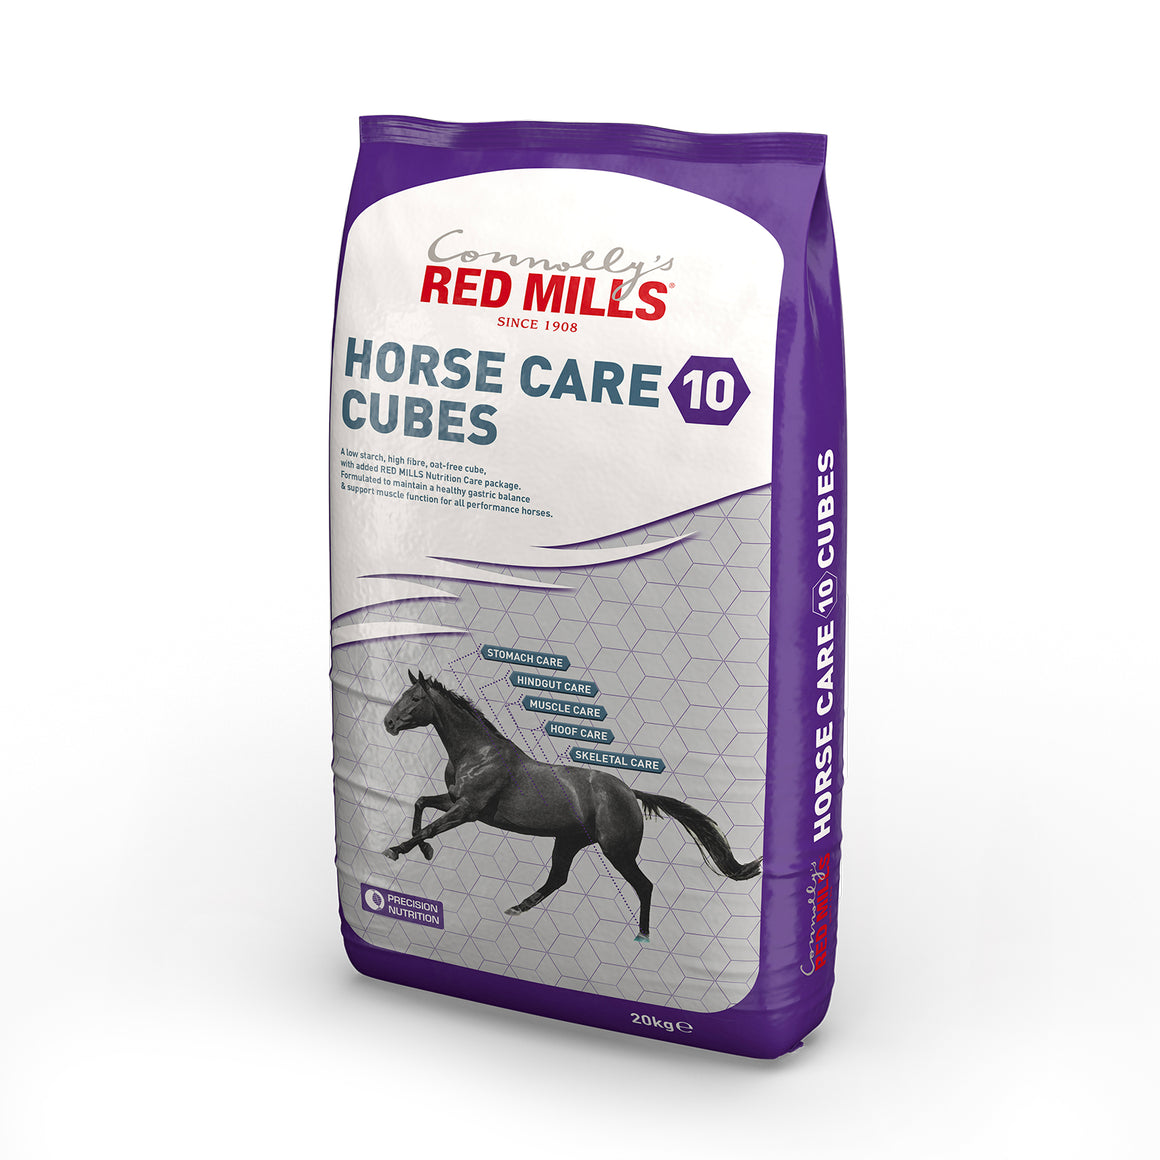 Red Mills Horse Care 10 cubes 20kg - free delivery